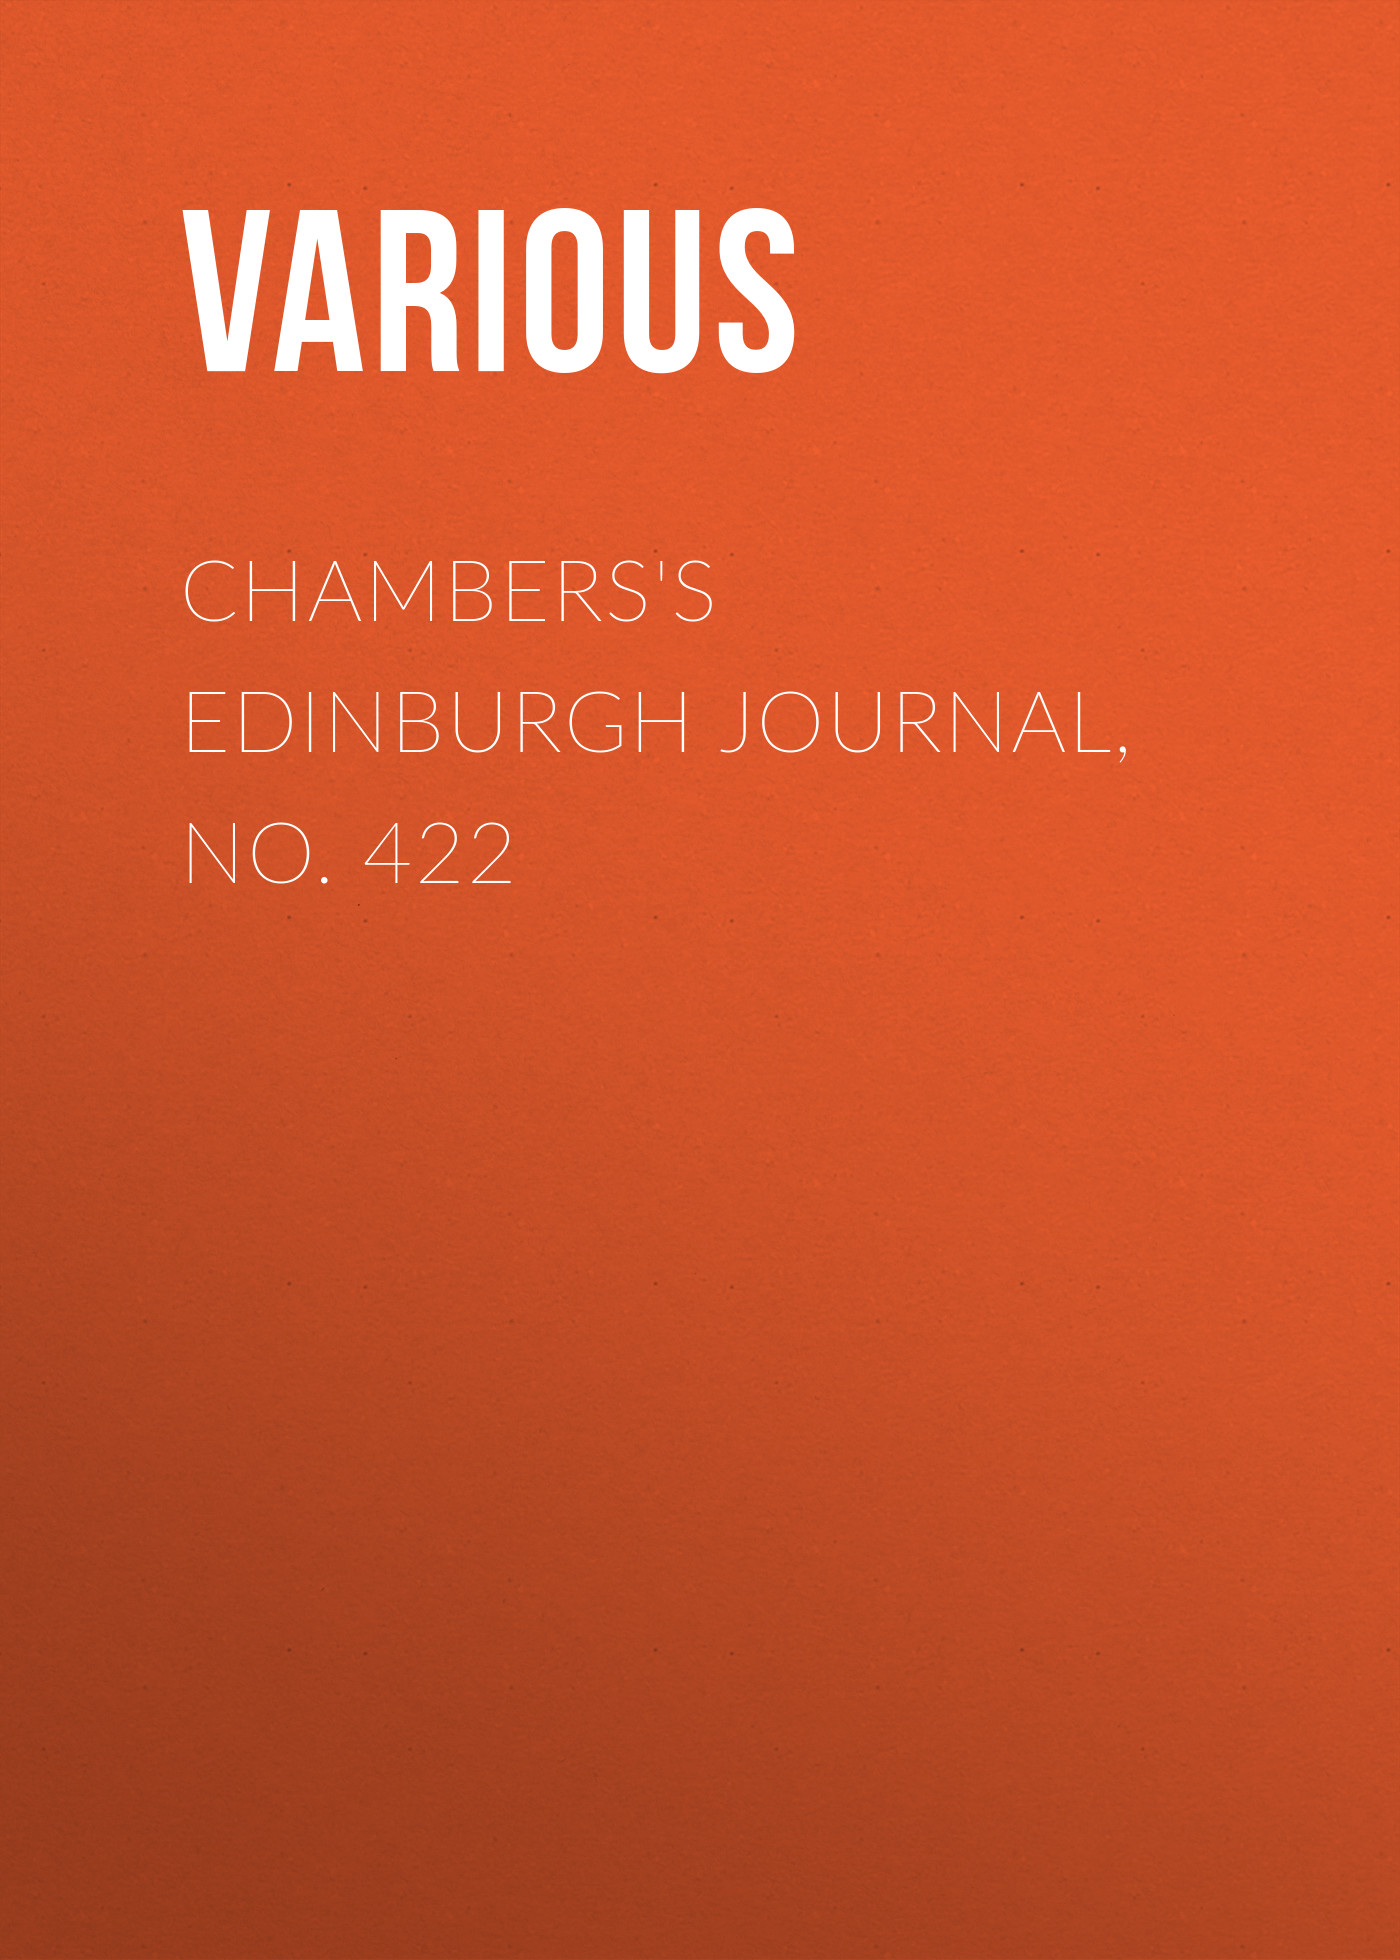 Chambers\'s Edinburgh Journal, No. 422 ( Various  )